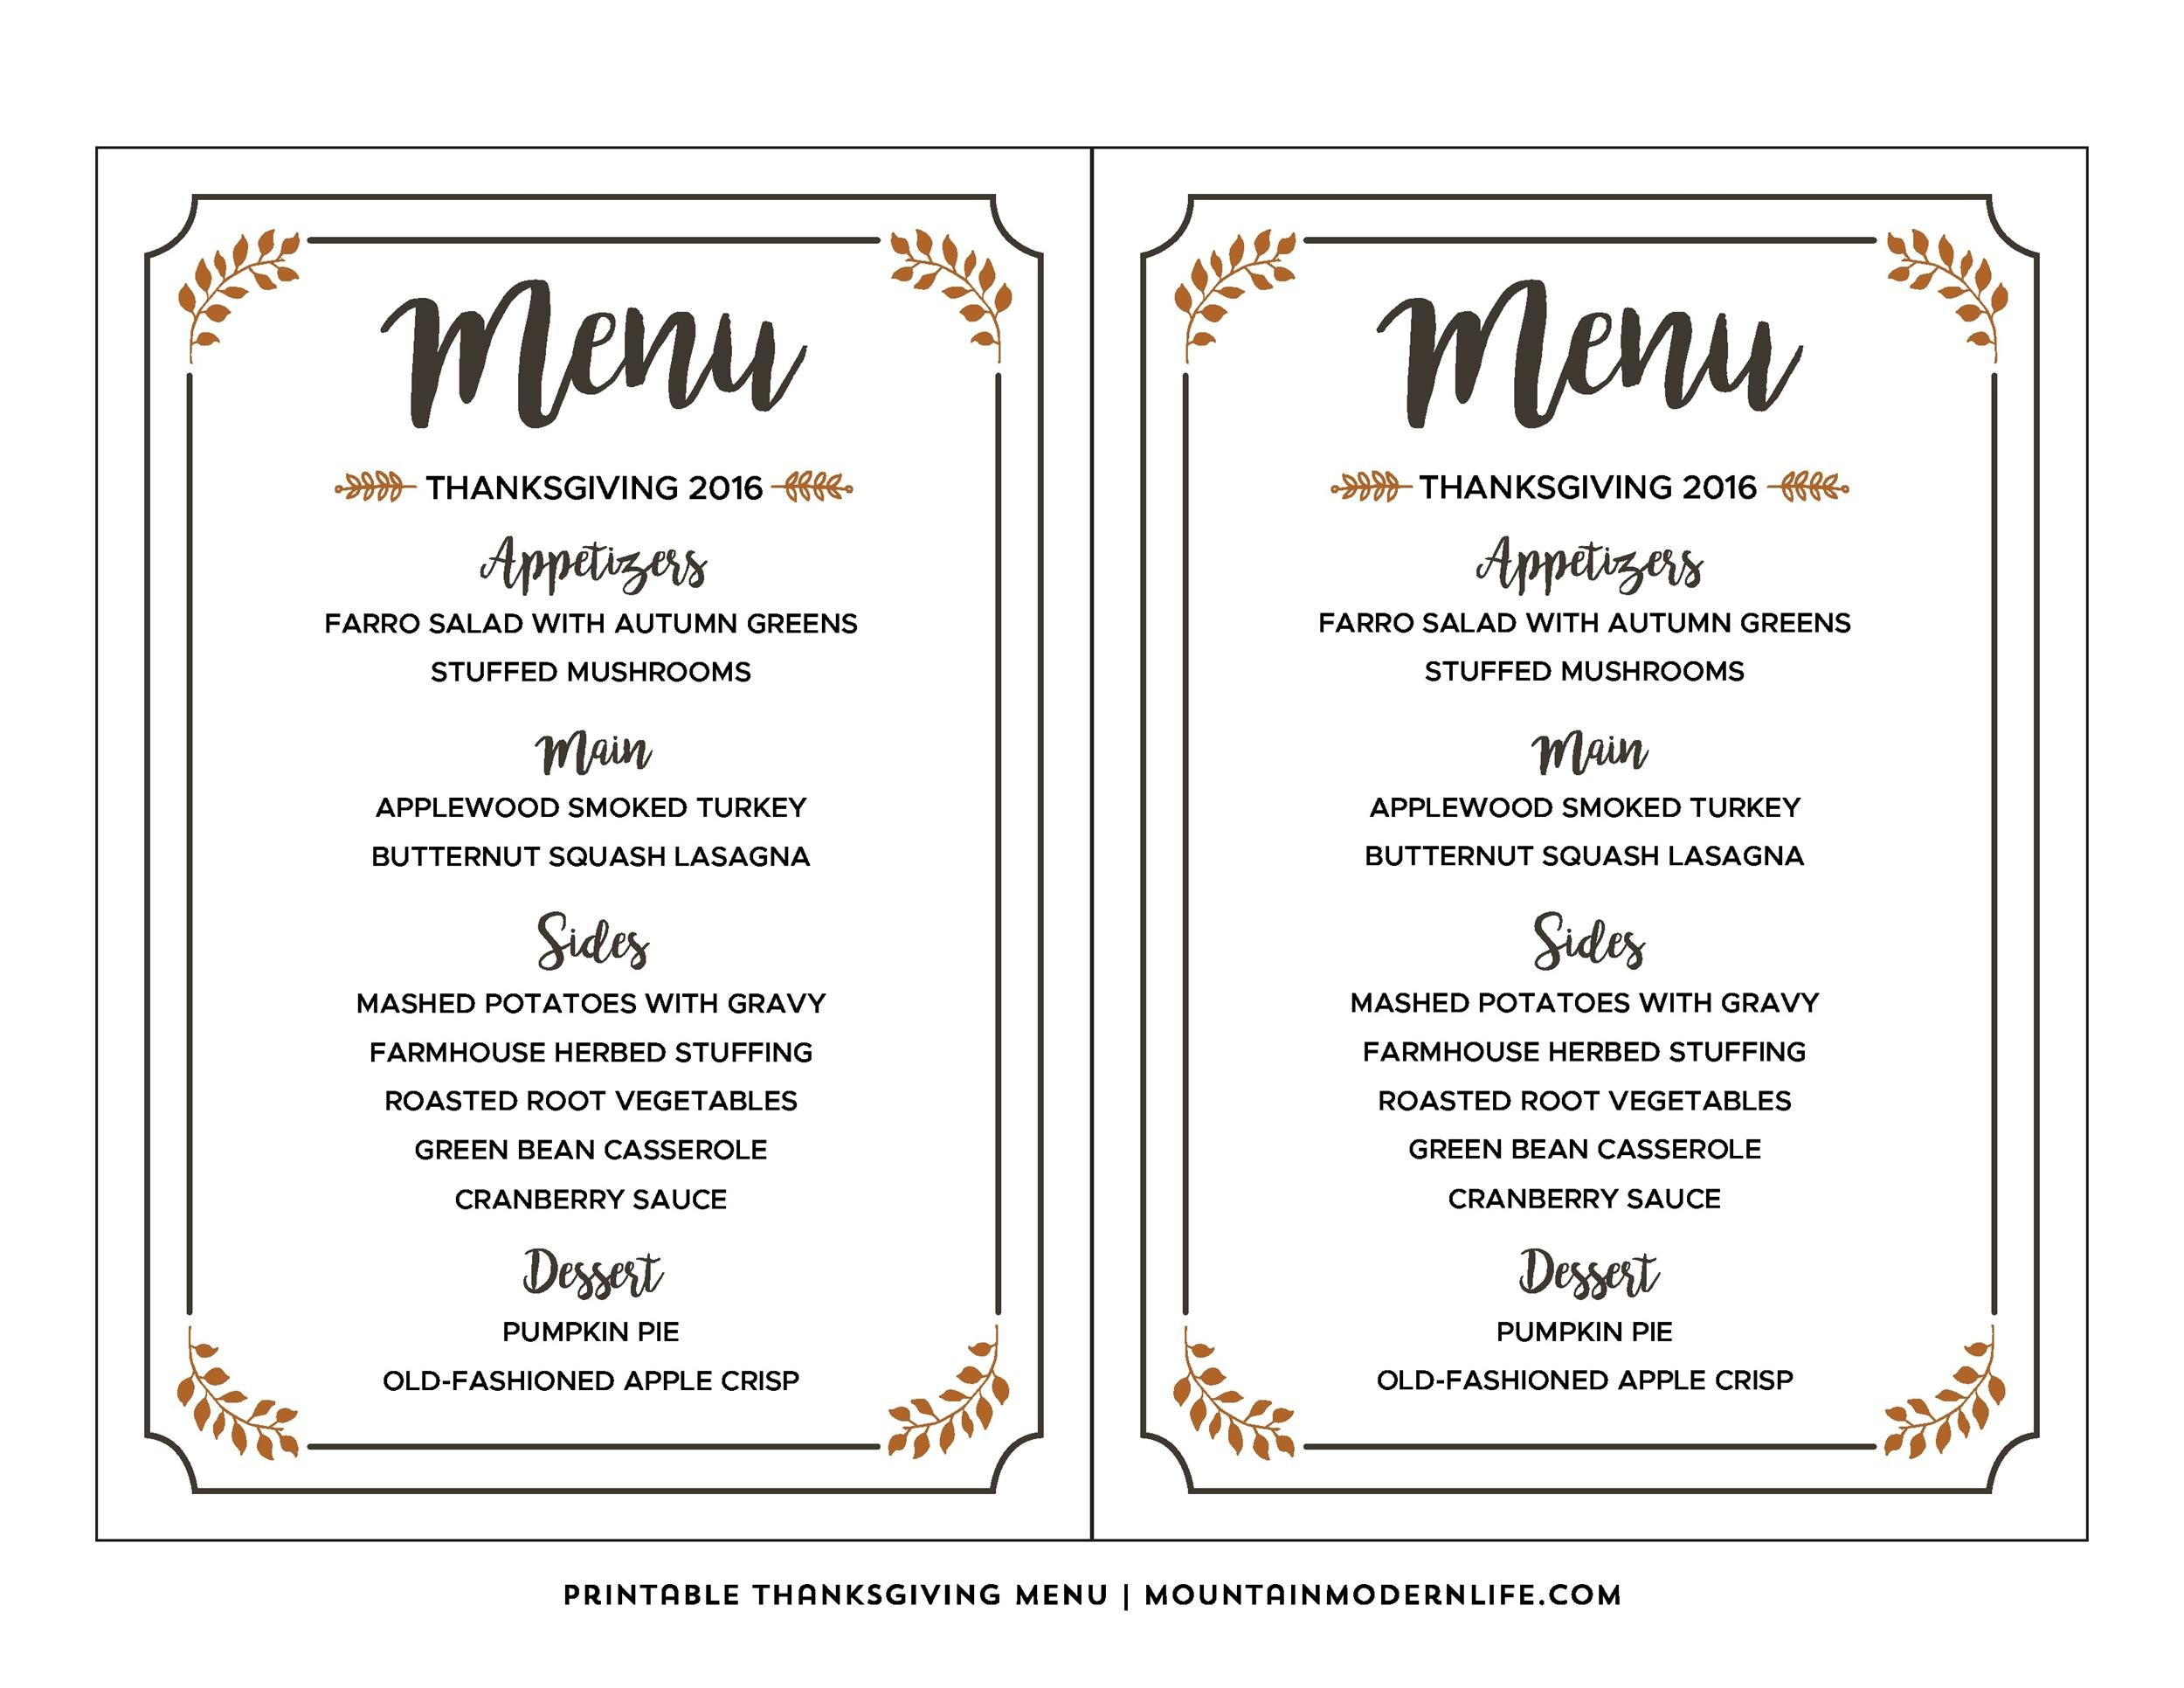 photo about Printable Thanksgiving Menu named 35 Astounding Thanksgiving Menu Templates ᐅ Template Lab